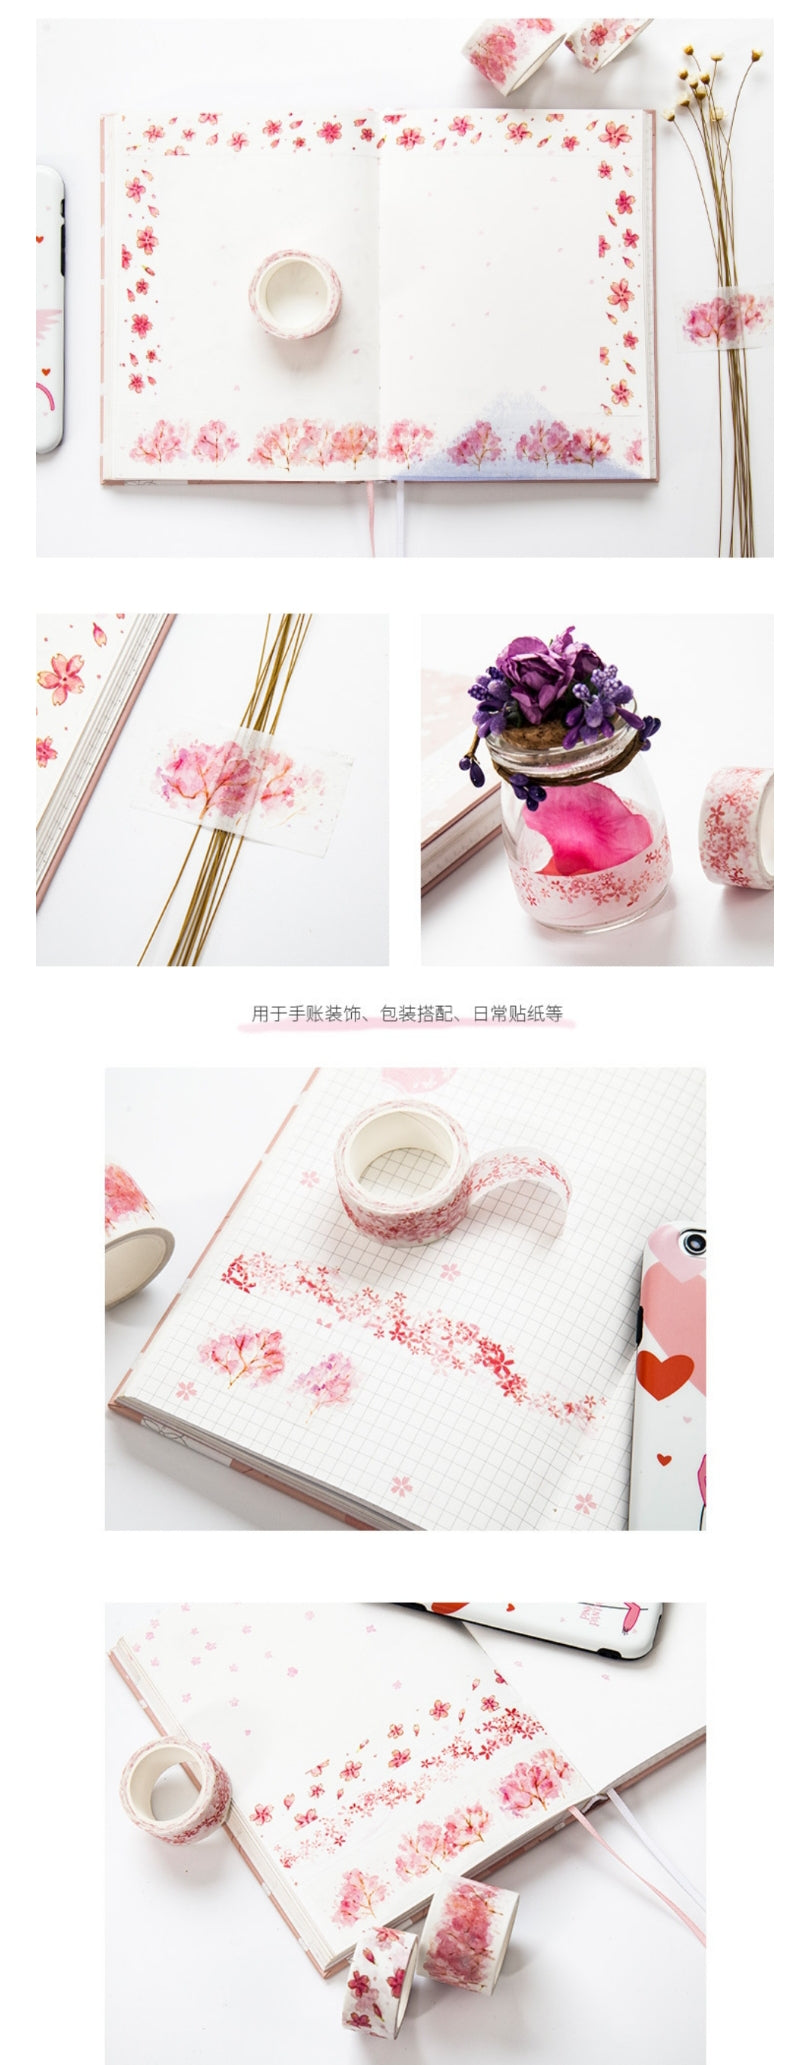 Watercolor Sakura Washi Tape - Otrio Stationery